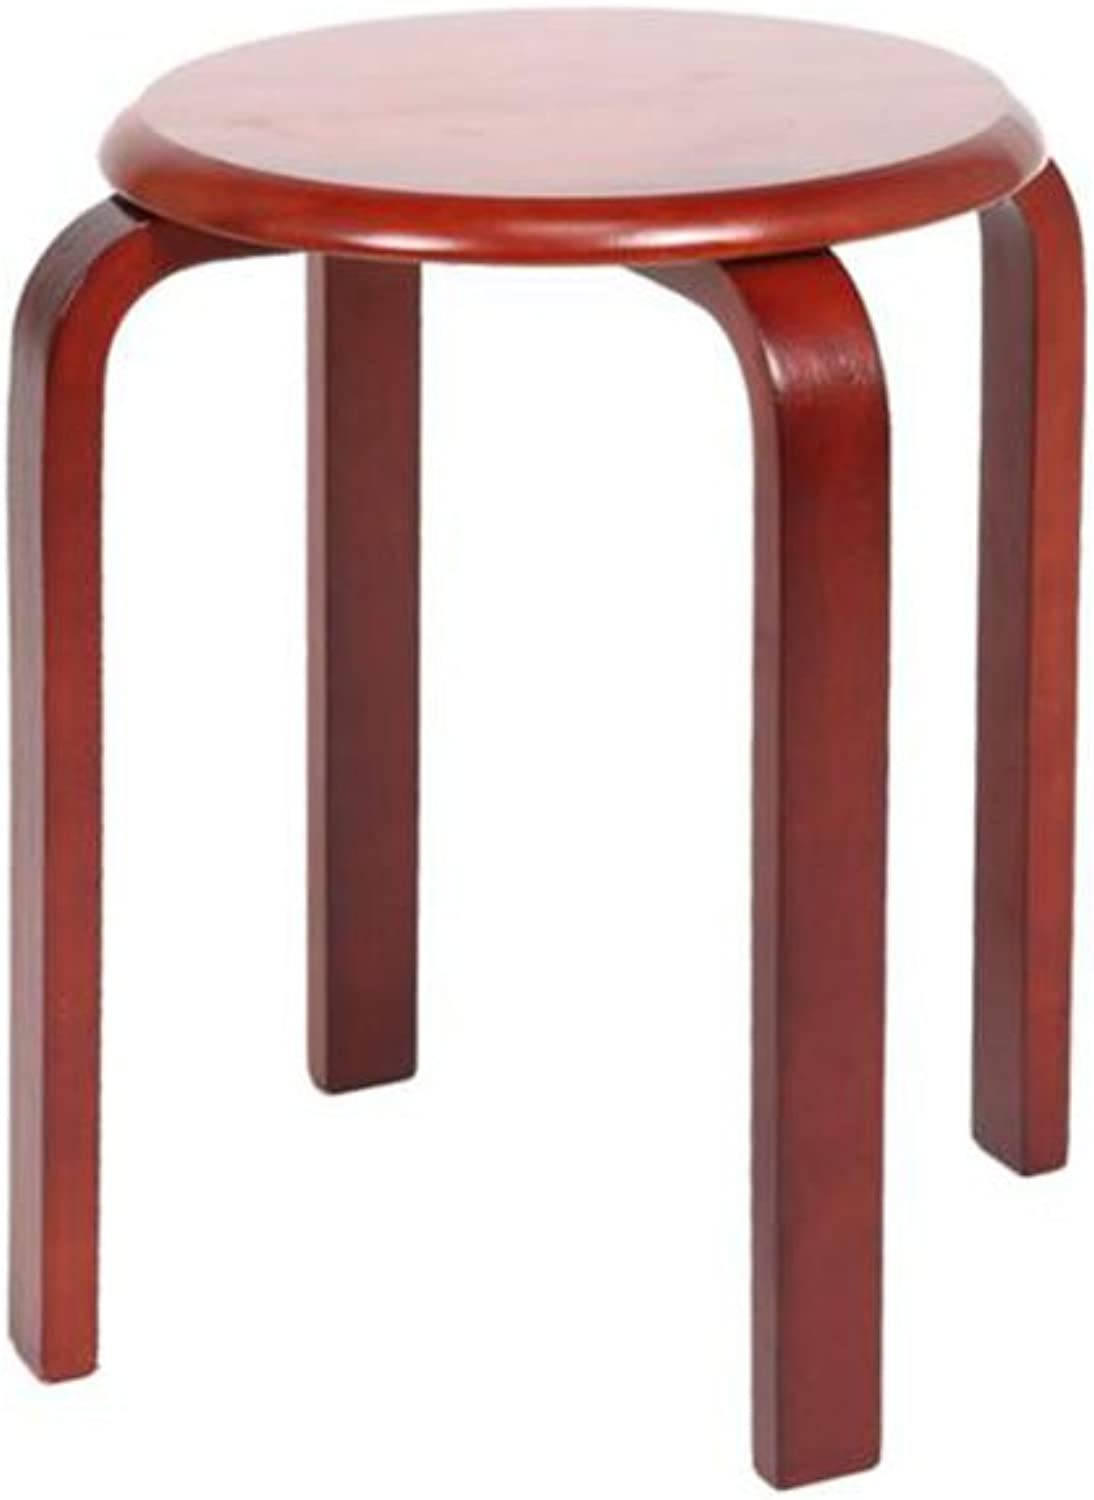 CJC Wooden Stool Solid Wood Adult 4 colors Home Office Furniture Kitchen (color   2)